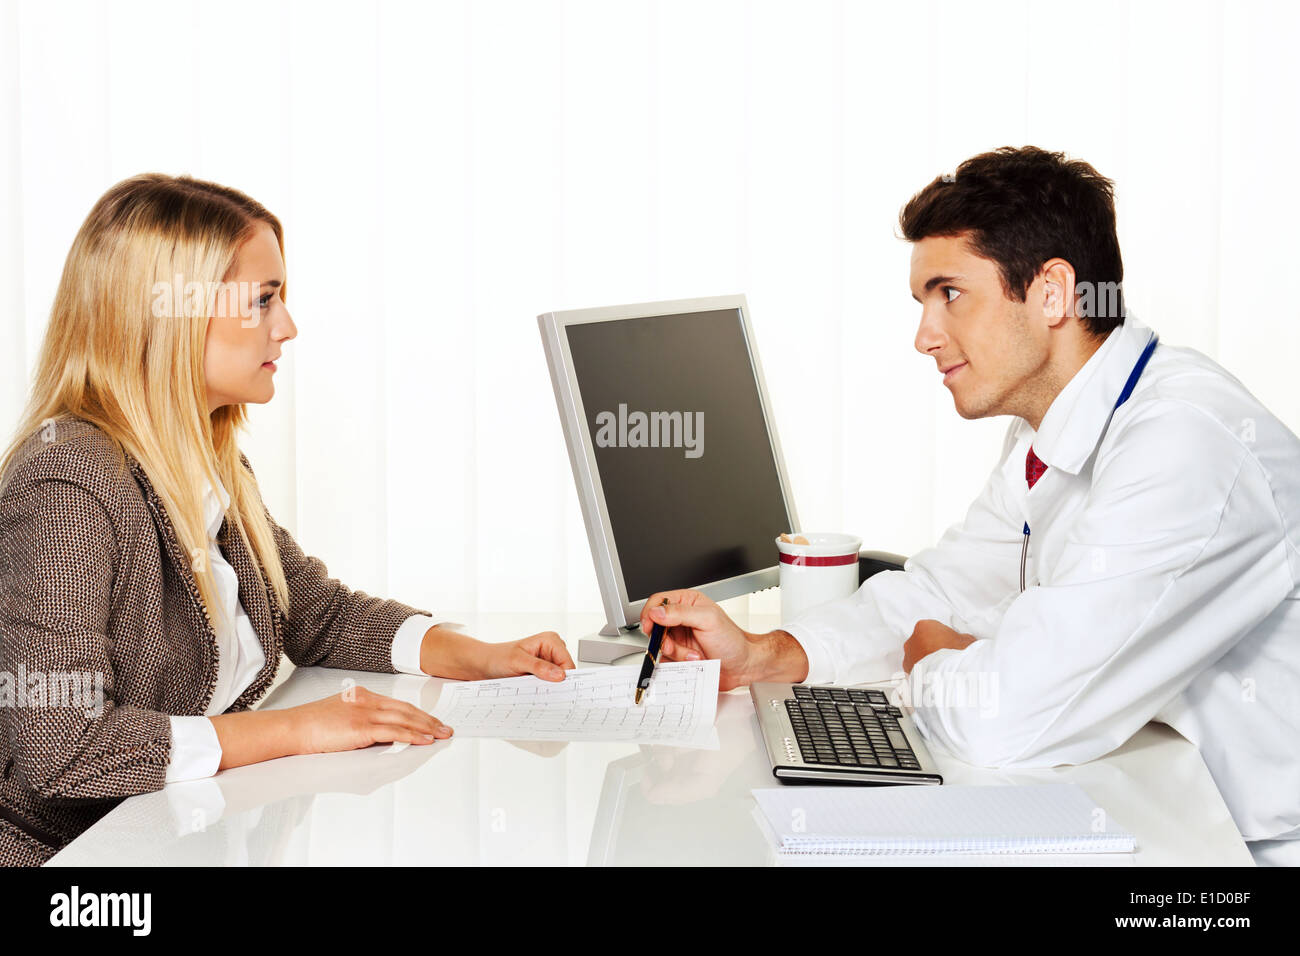 medical residency interview questions answers 15 shitty things medical residency interview questions answers